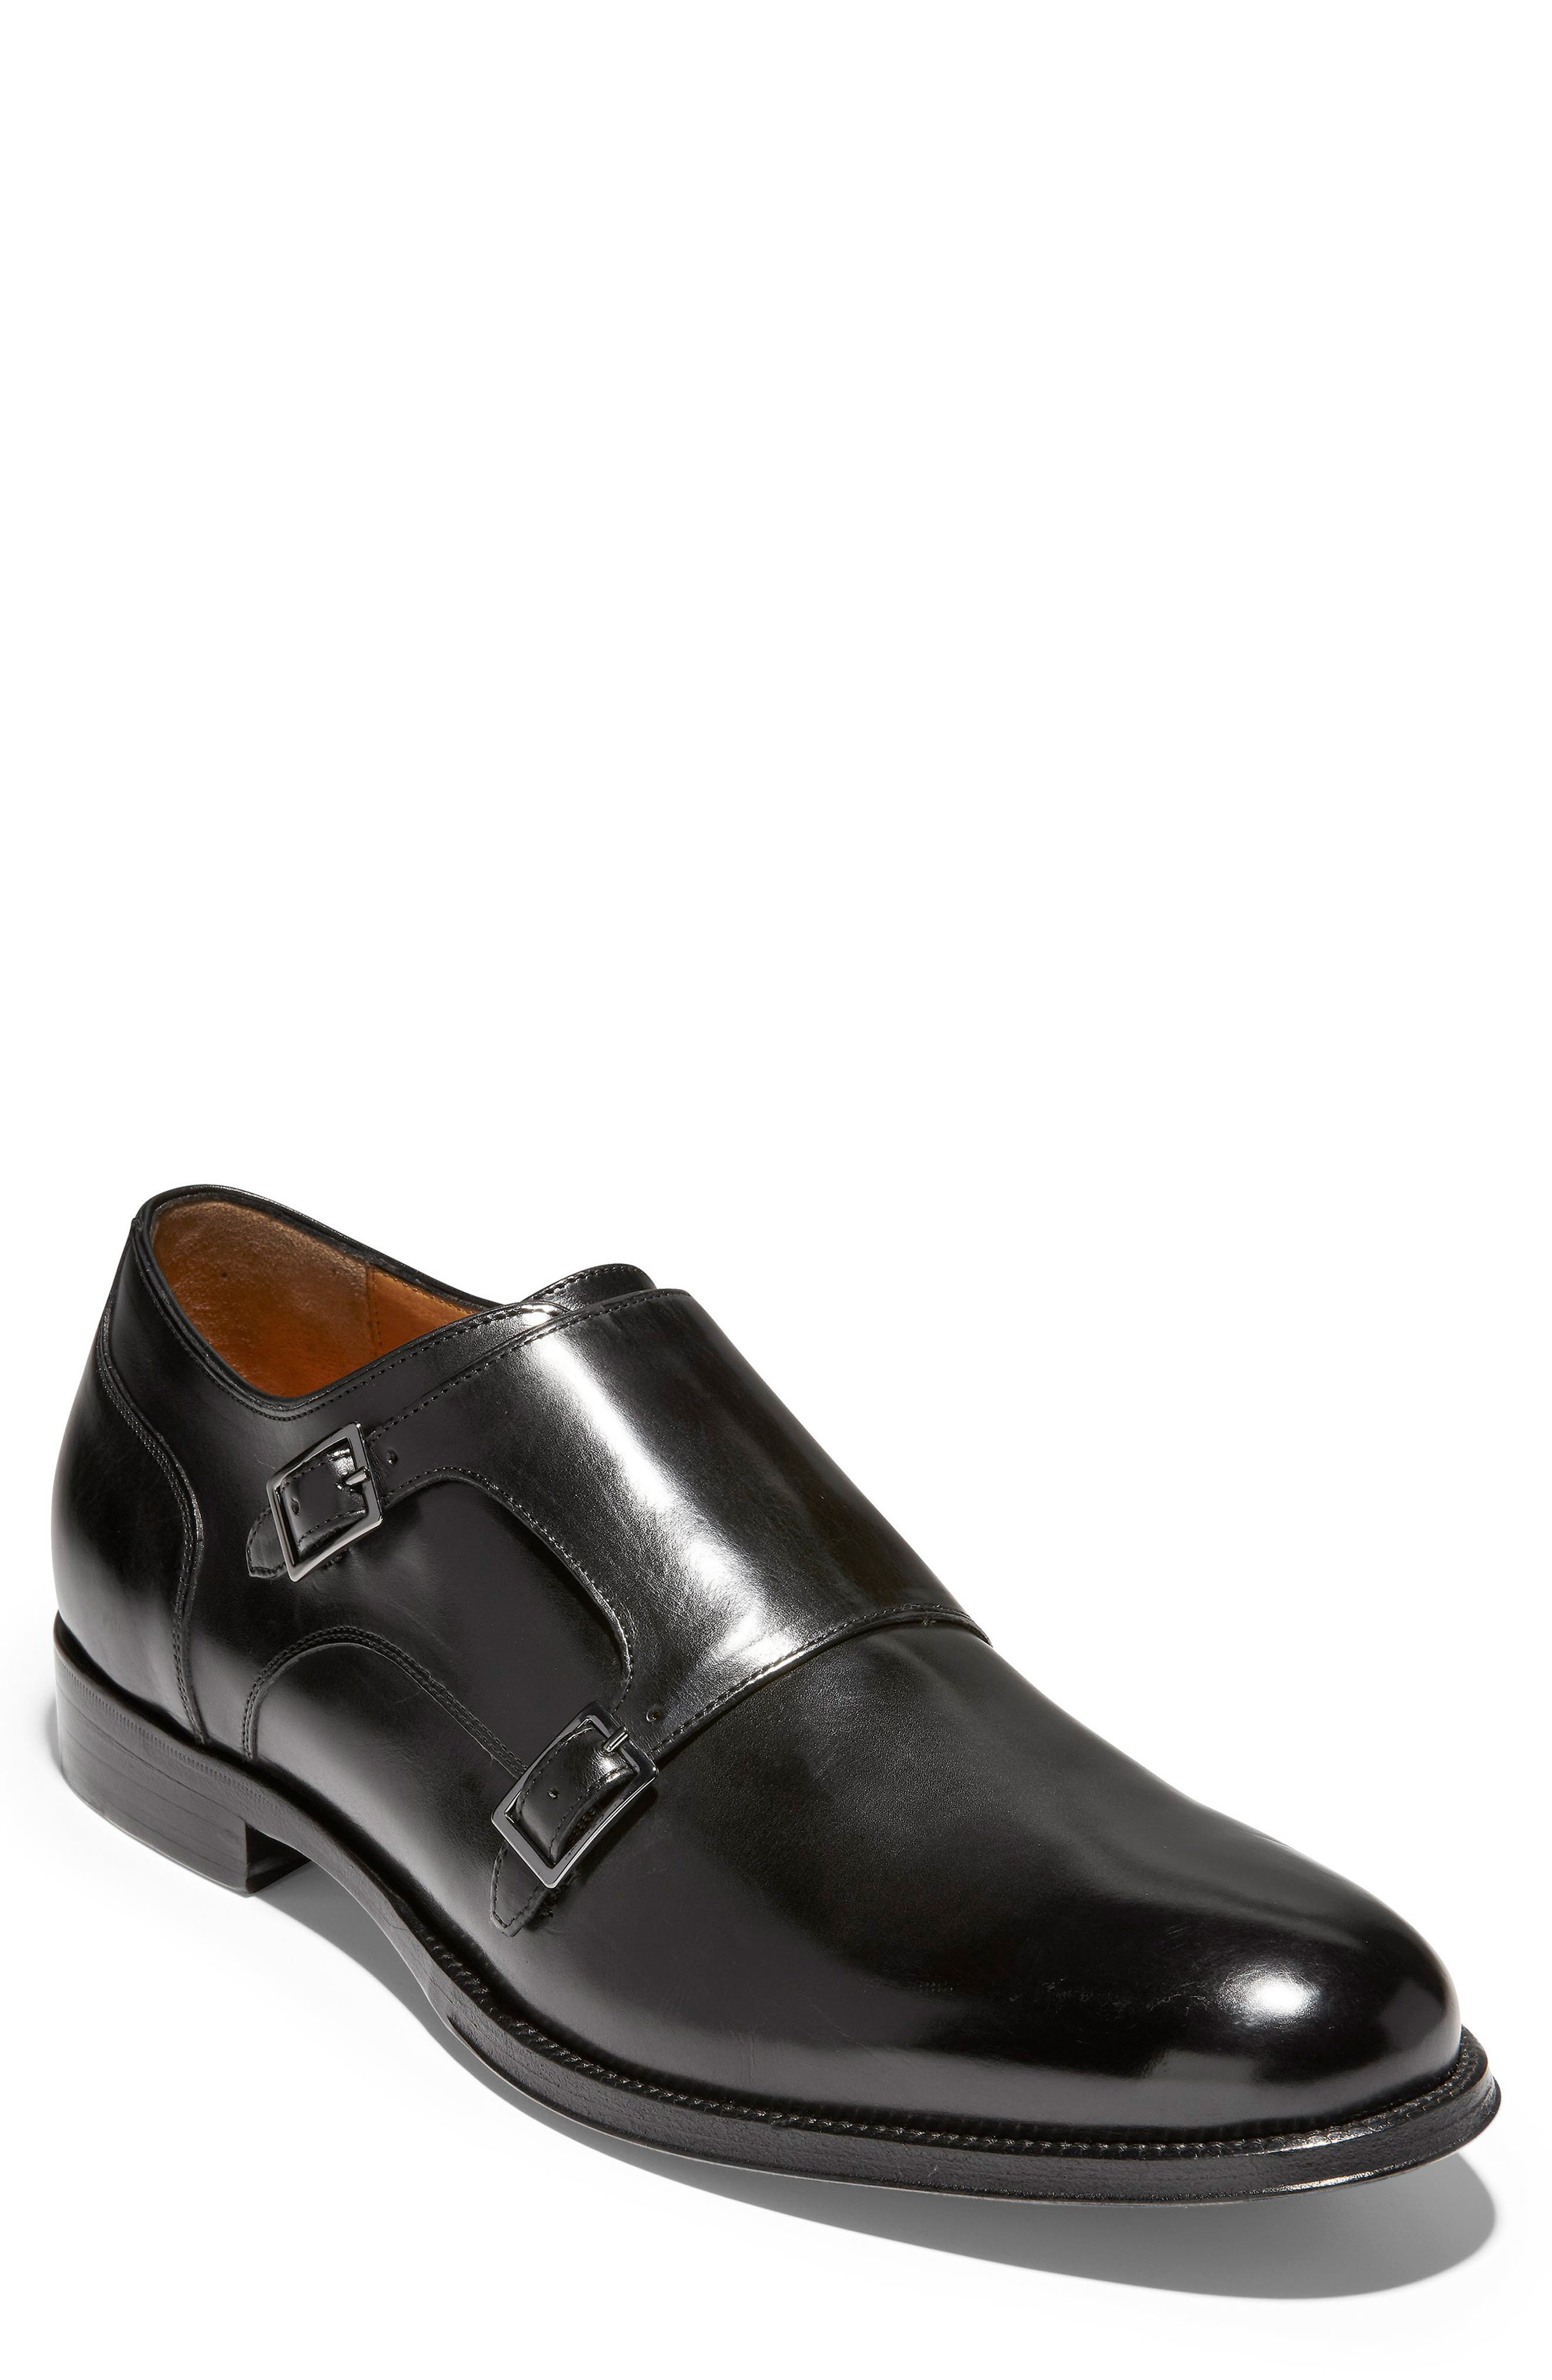 American Classics Gramercy Double Strap Monk Shoe,                             Main thumbnail 1, color,                             BLACK LEATHER